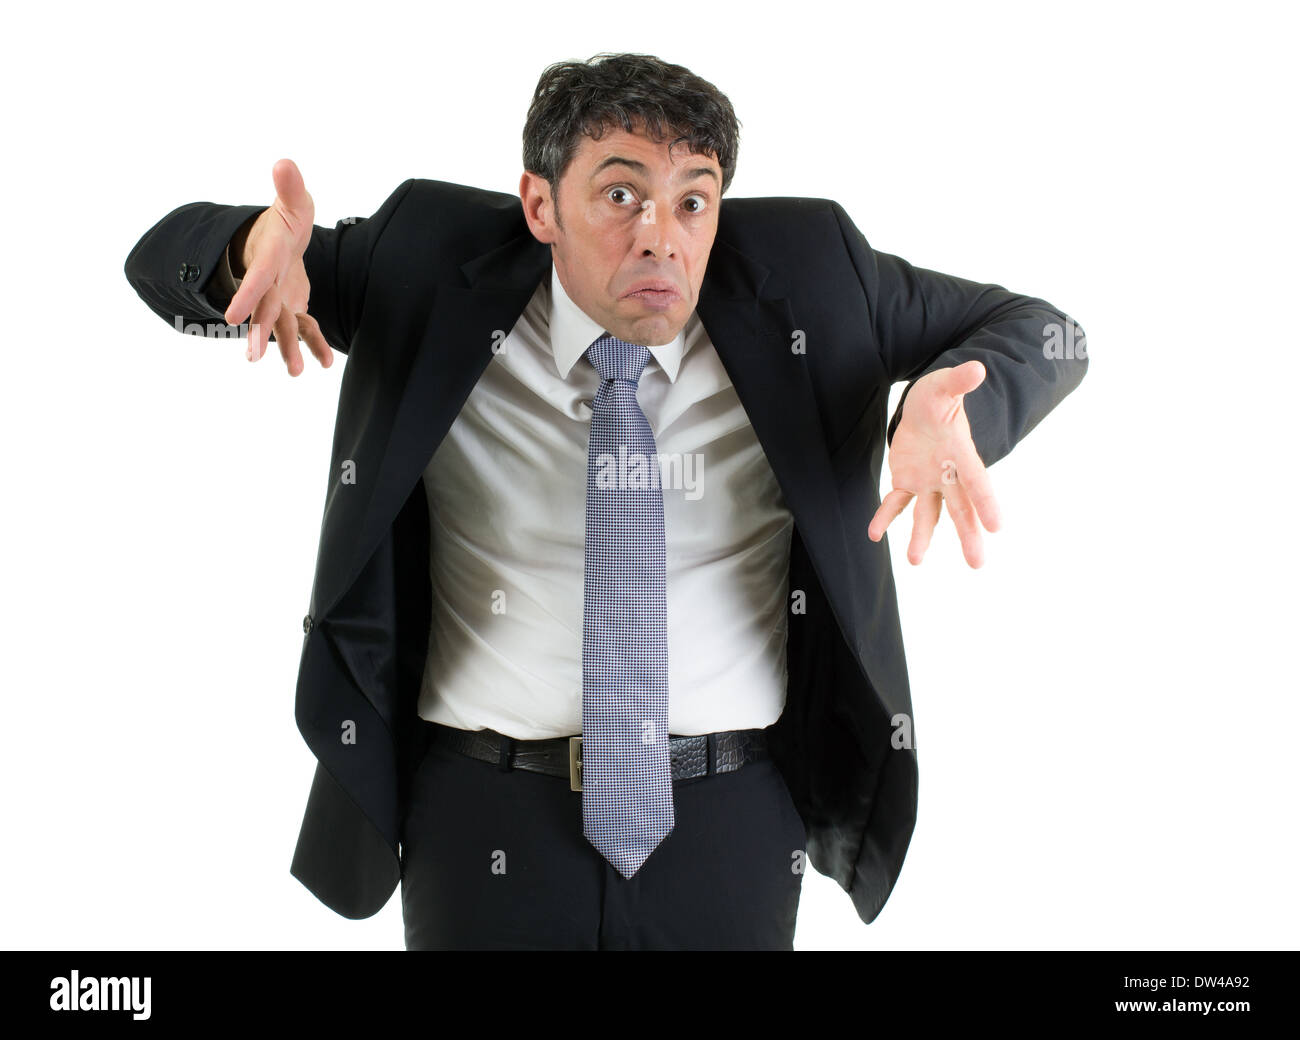 Expressive businessman shrugging his shoulders in ignorance or indifference and gesturing with his hands isolated on white - Stock Image